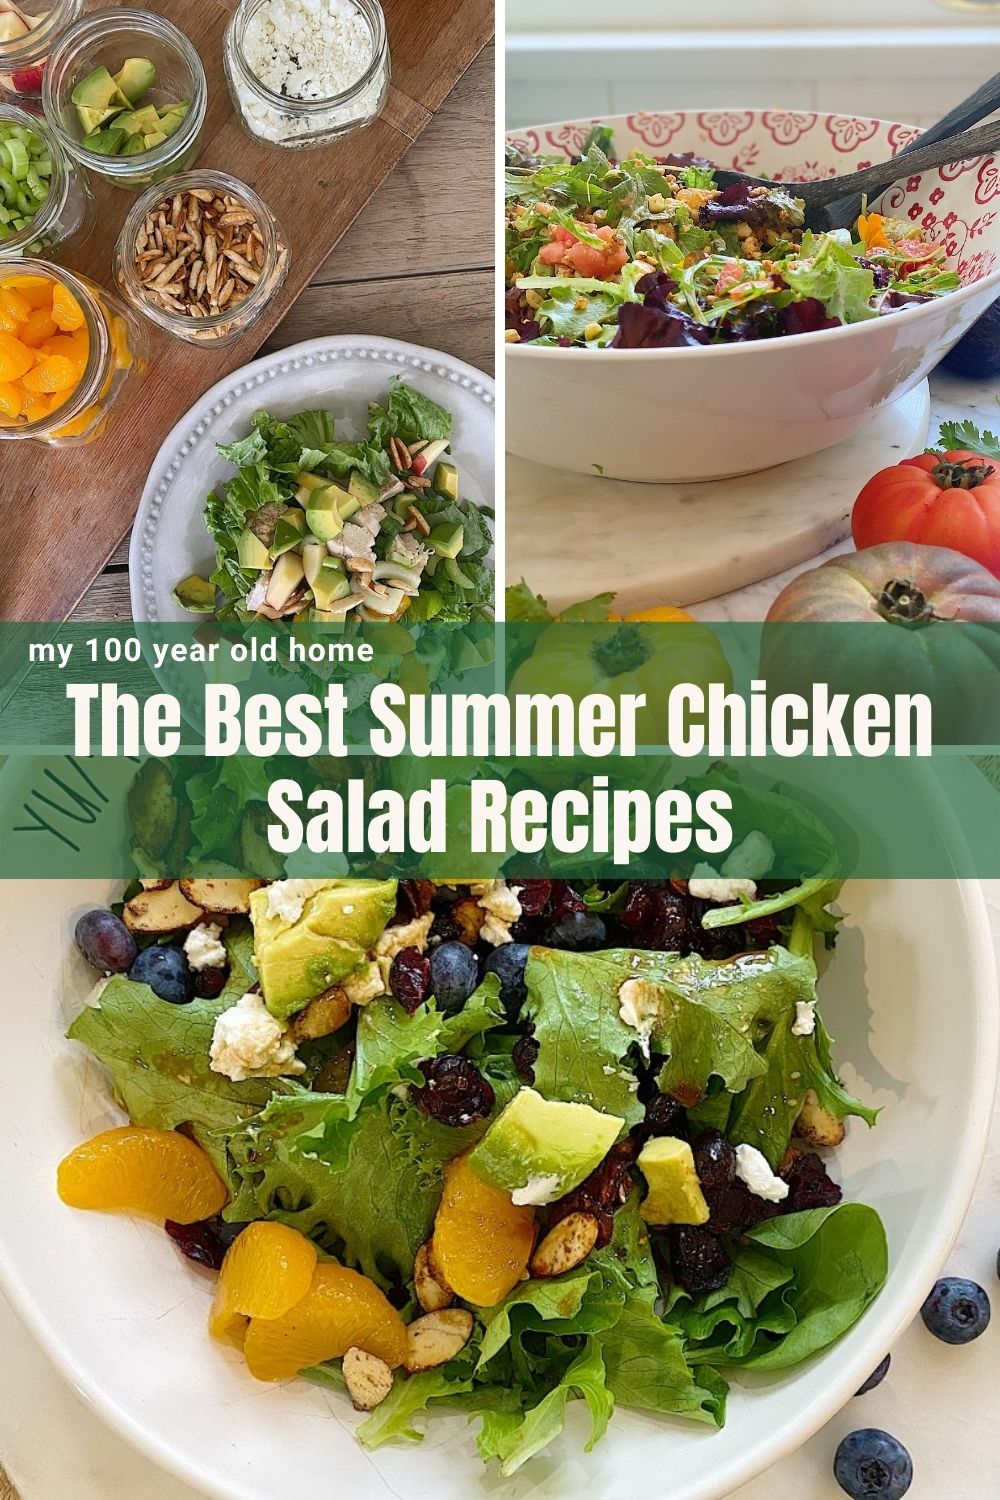 Summer salads are some of my favorite things to eat. Today I am sharing my three favorite salads and they are all summer chicken recipes.